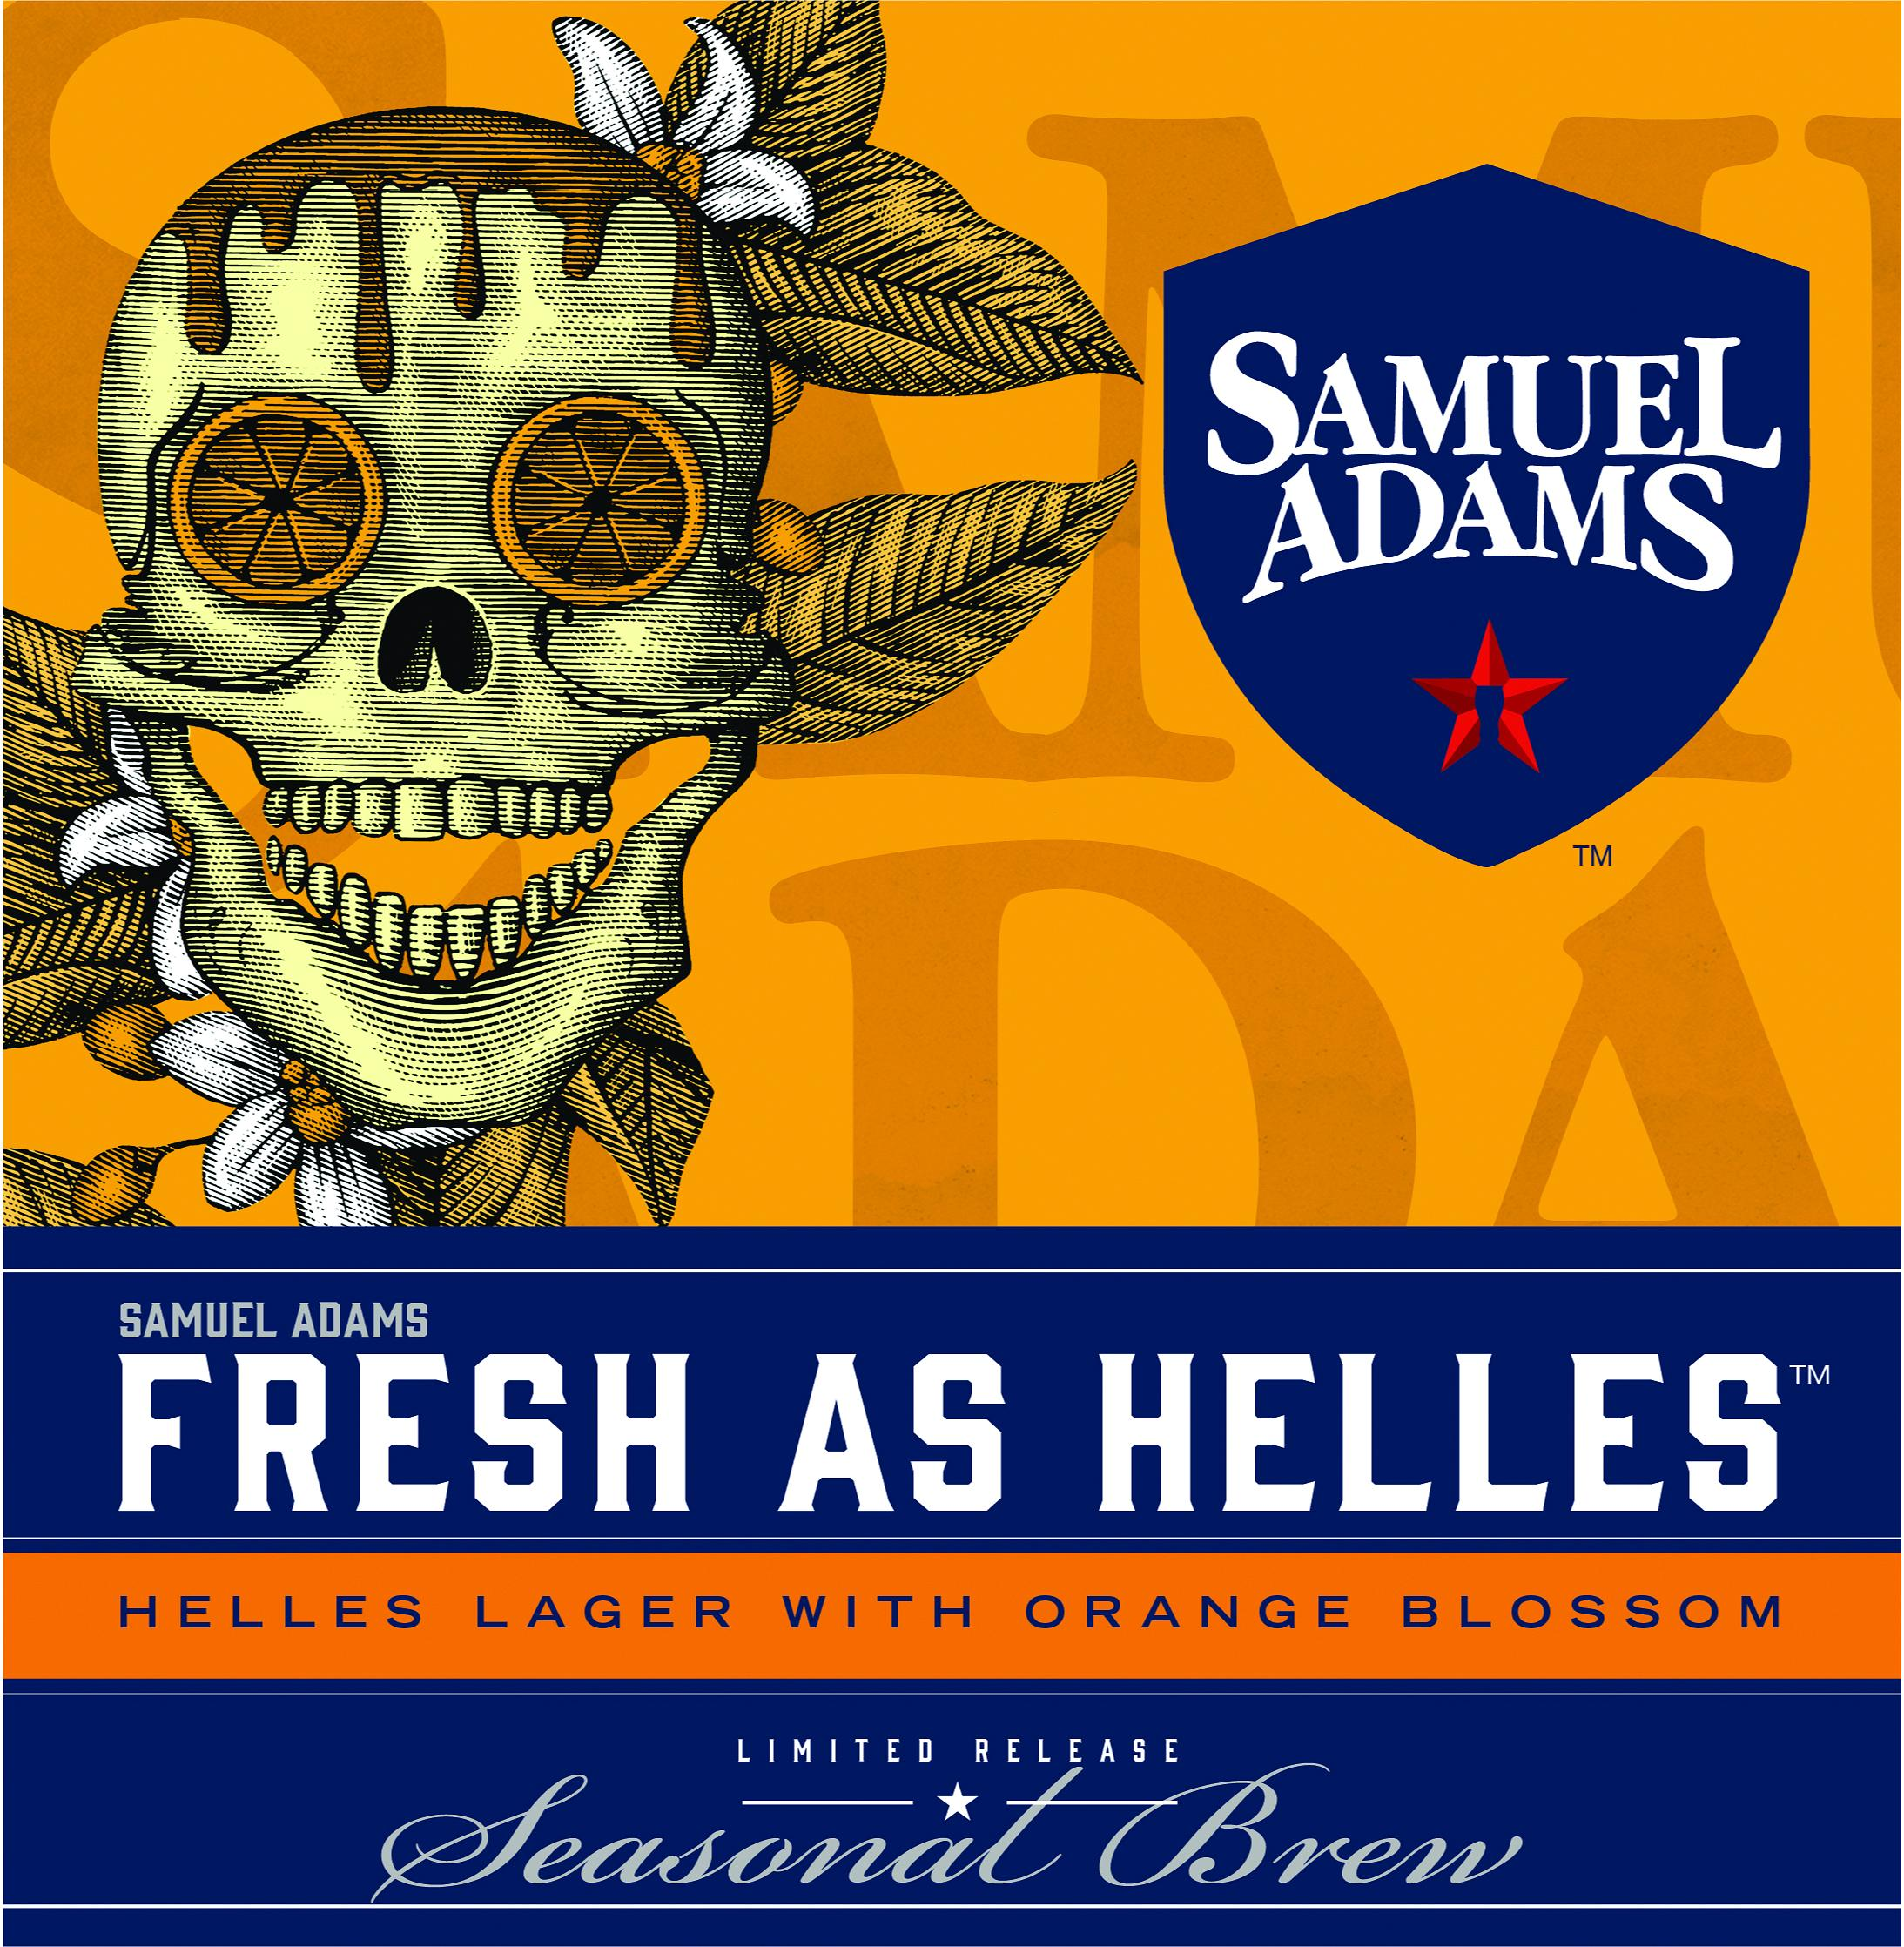 Samuel Adams Fresh As Helles